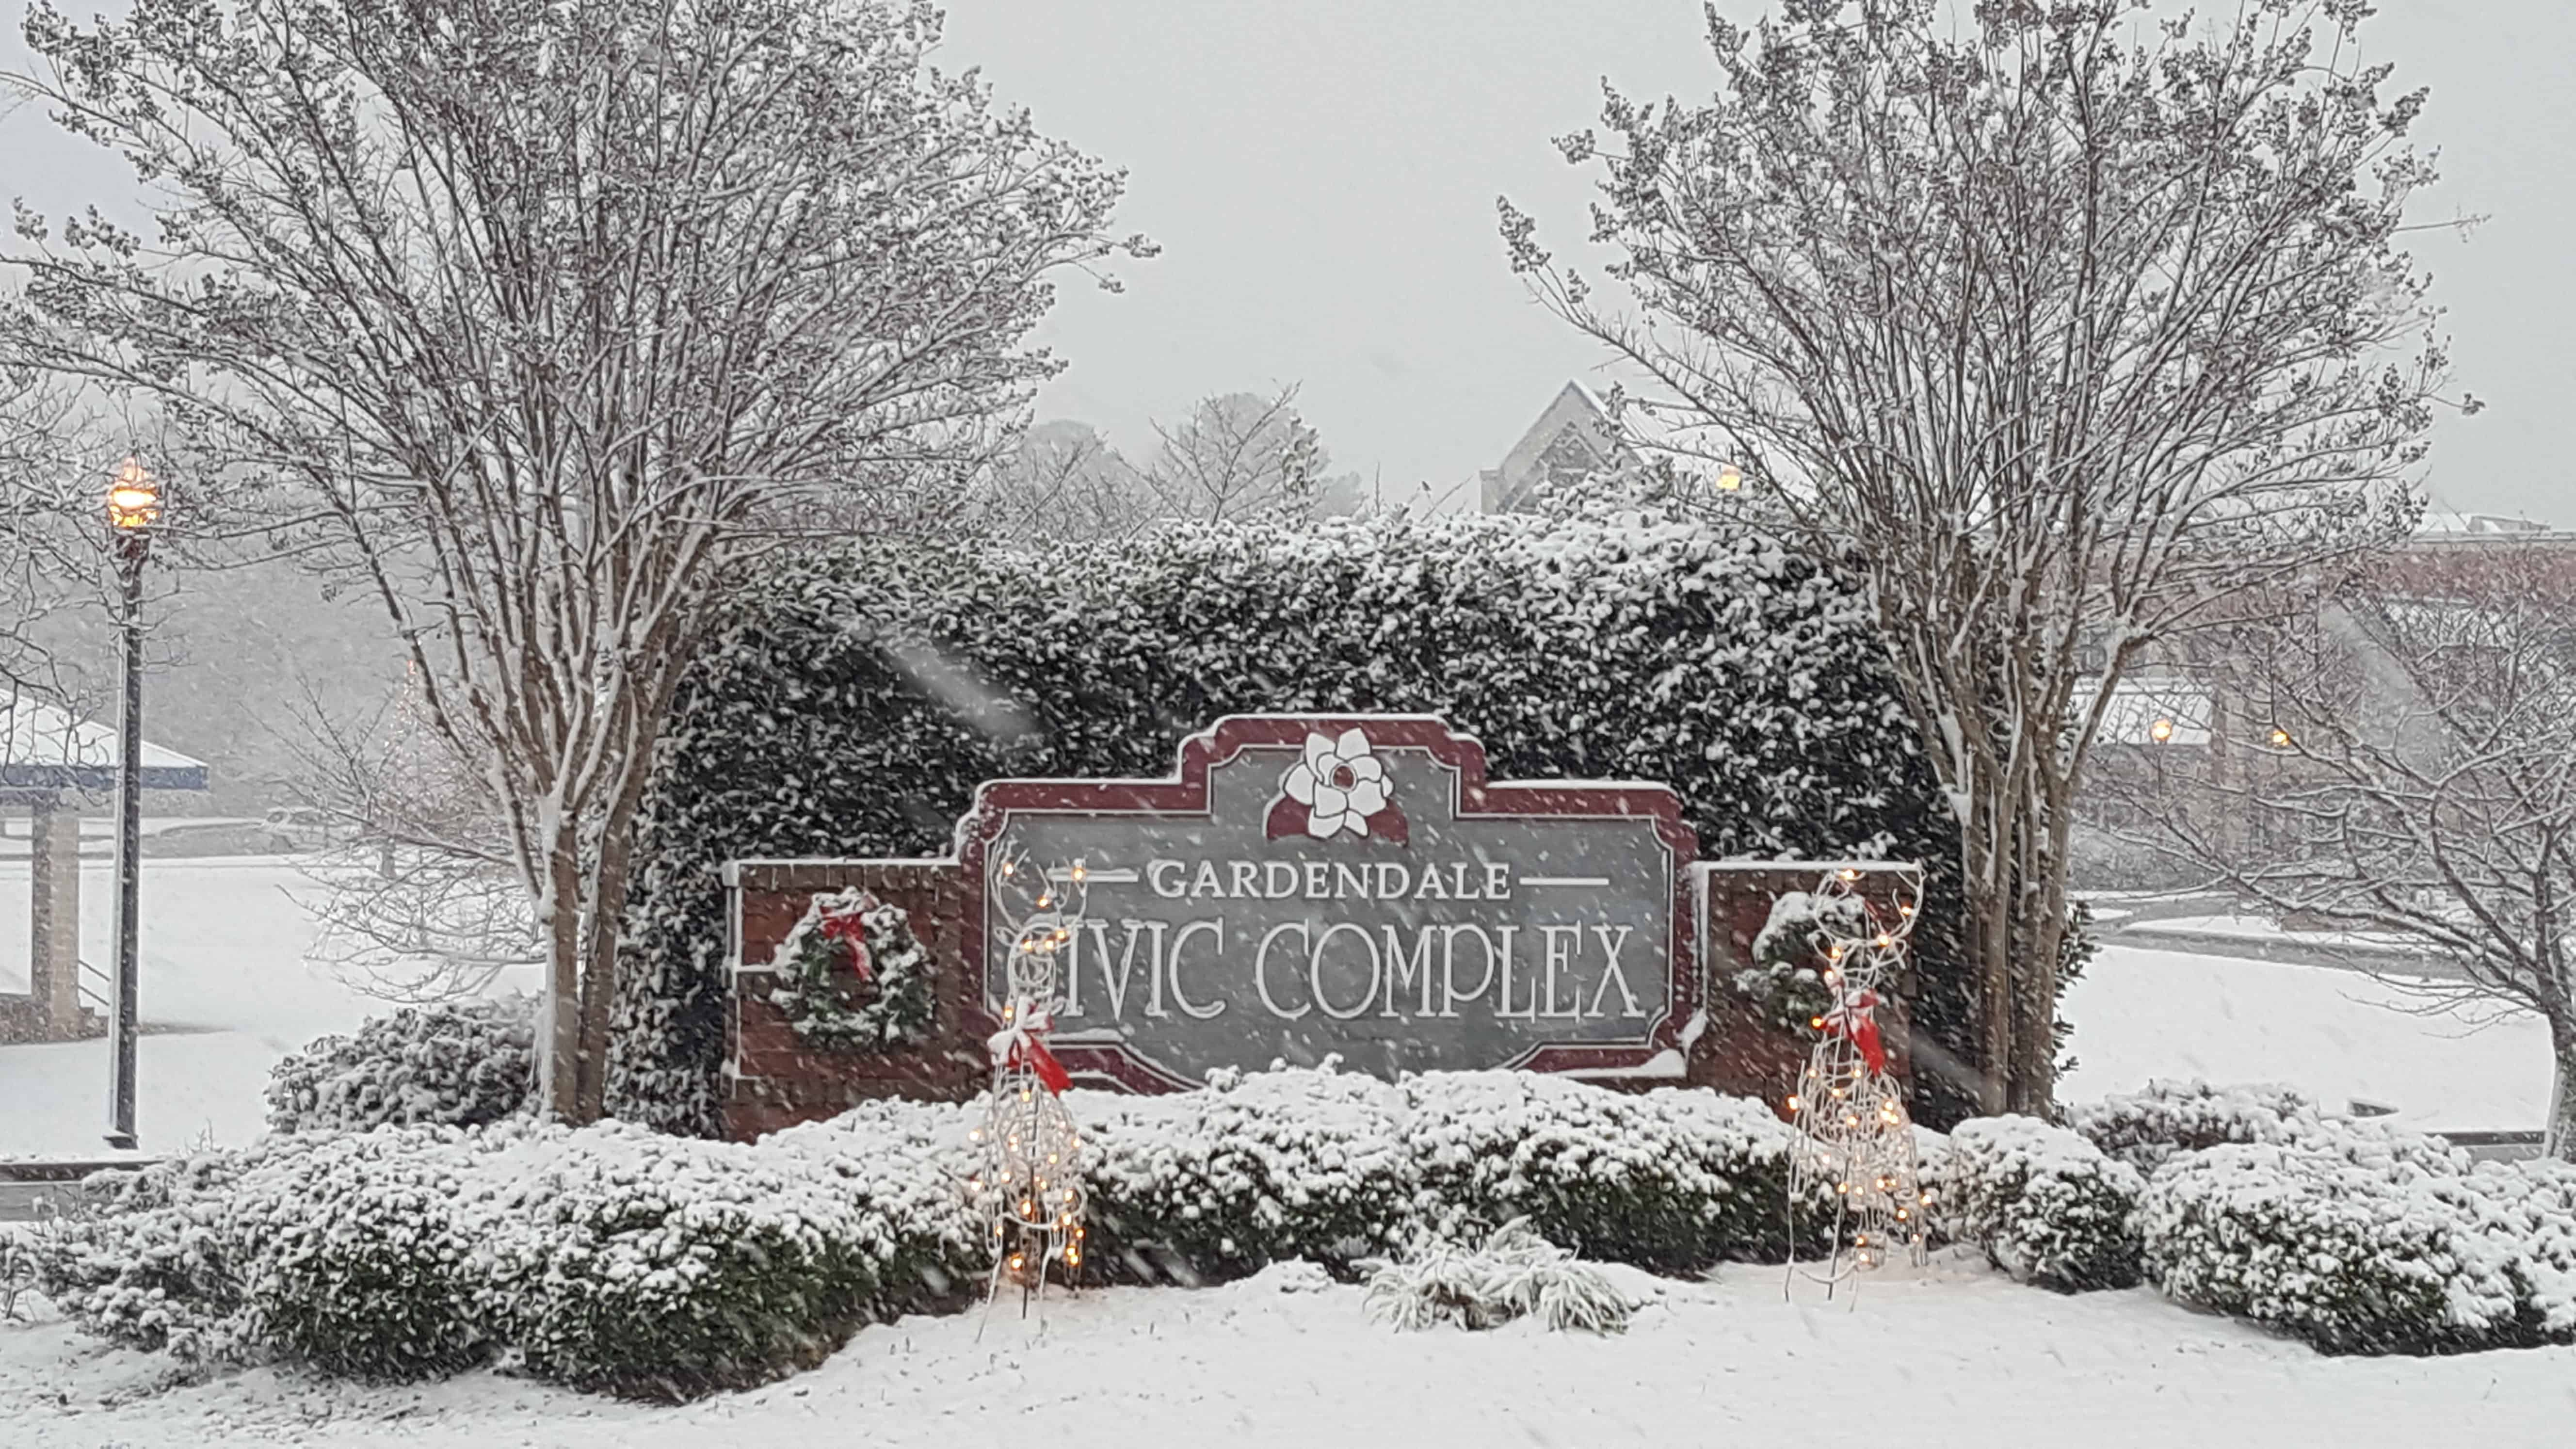 City of Gardendale snowing